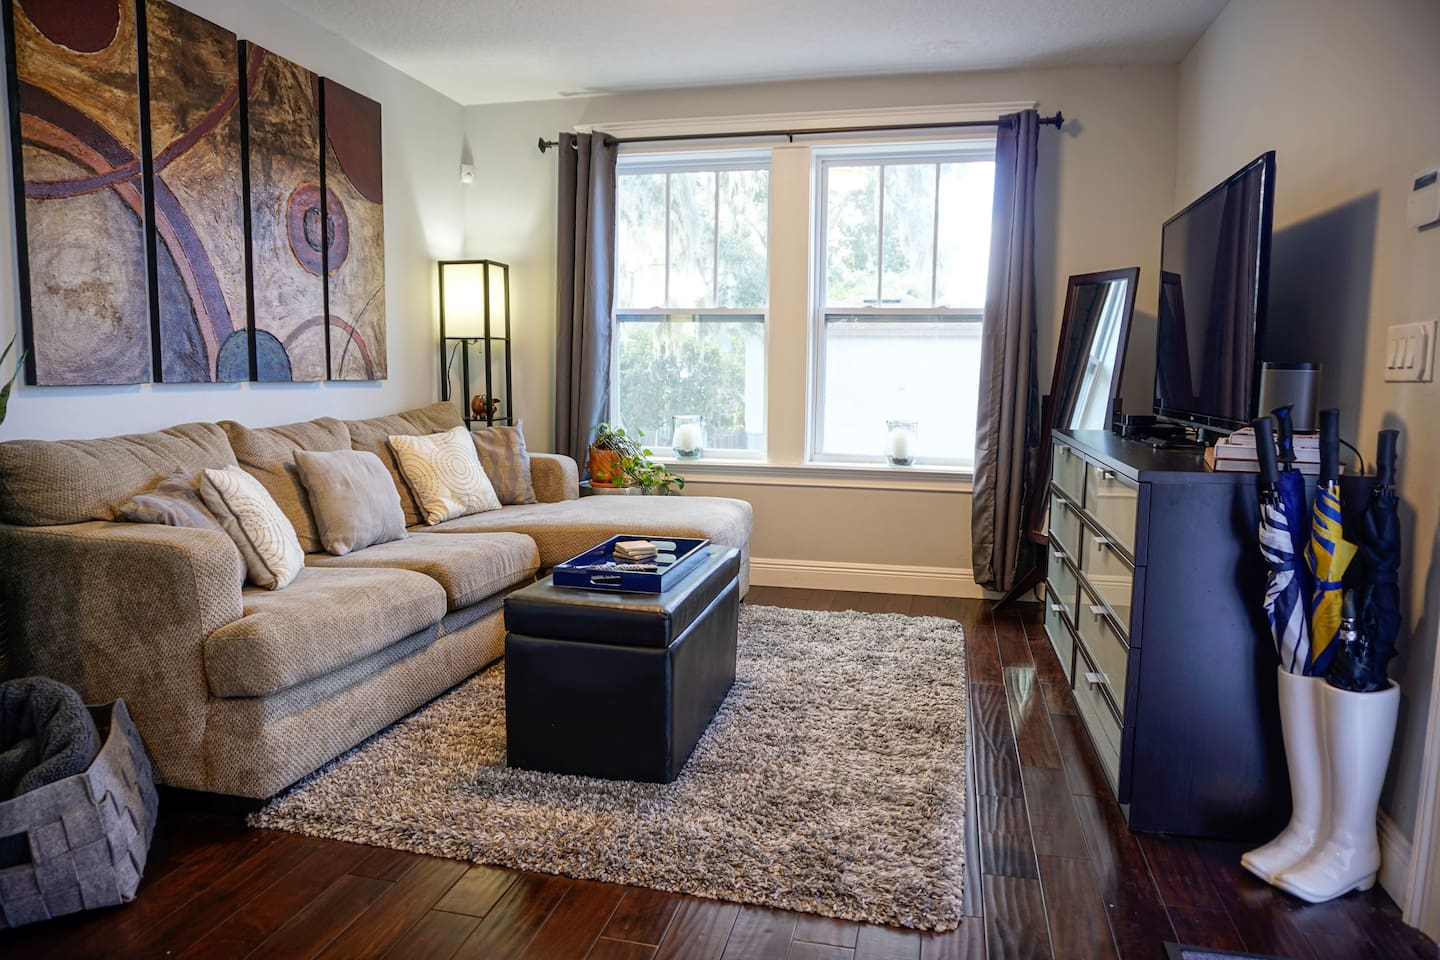 Comfy couch easily sleeps an extra guest. The apartment has downtown views with all the amenities needed!